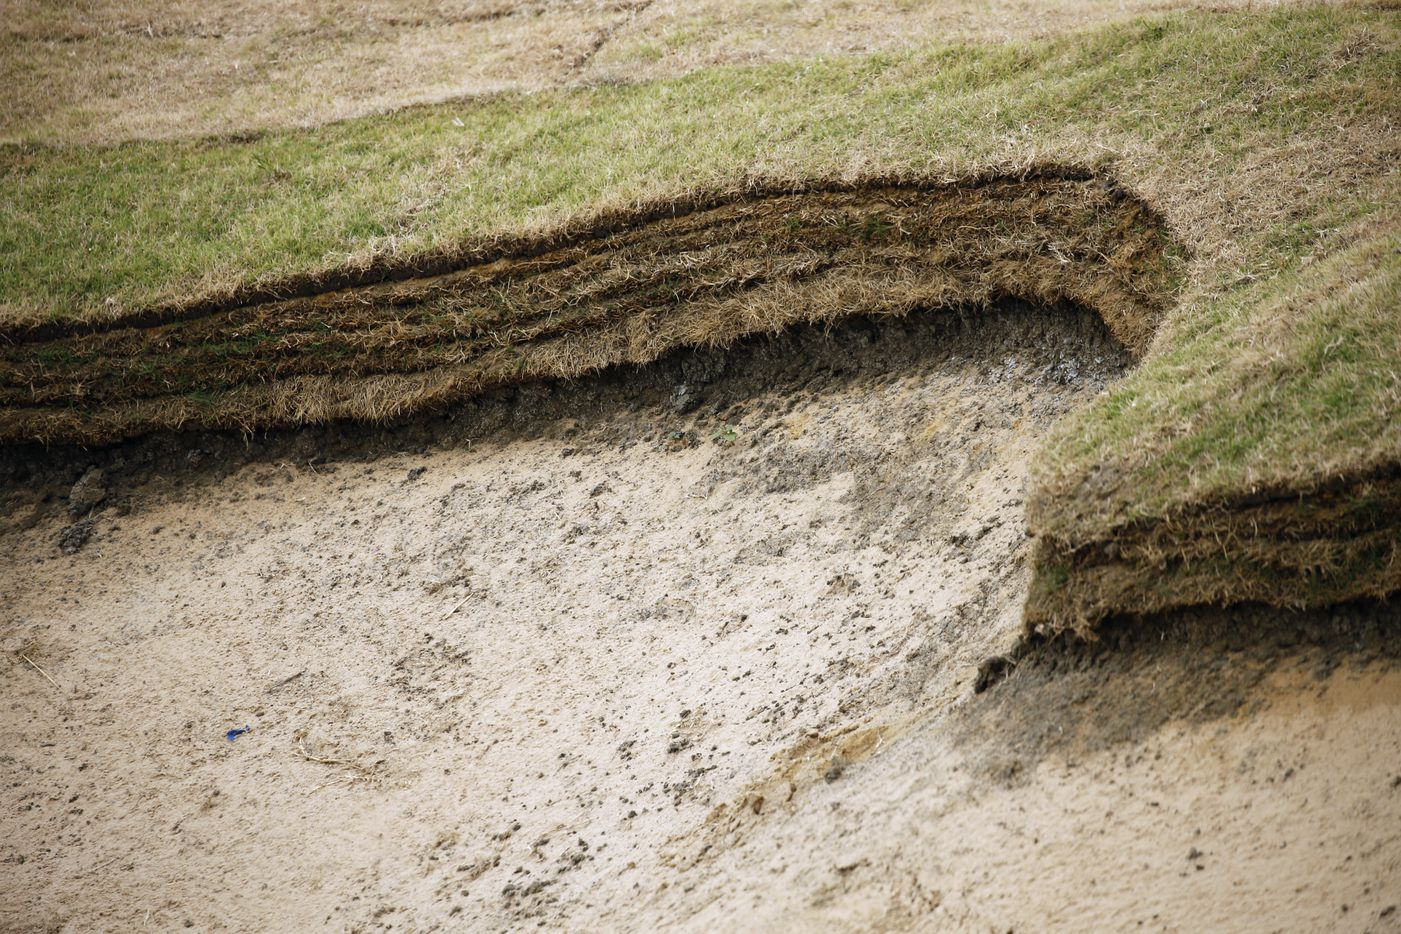 A revetted bunker, partially created by stacking sod on one of the bunkers on the East Course designed by Gil Hanse at PGA Frisco in Frisco, Texas, on Wednesday, May 20, 2020. The $520 million project is a mixed-use development that will be home to the PGA of America headquarters and two championship golf courses.